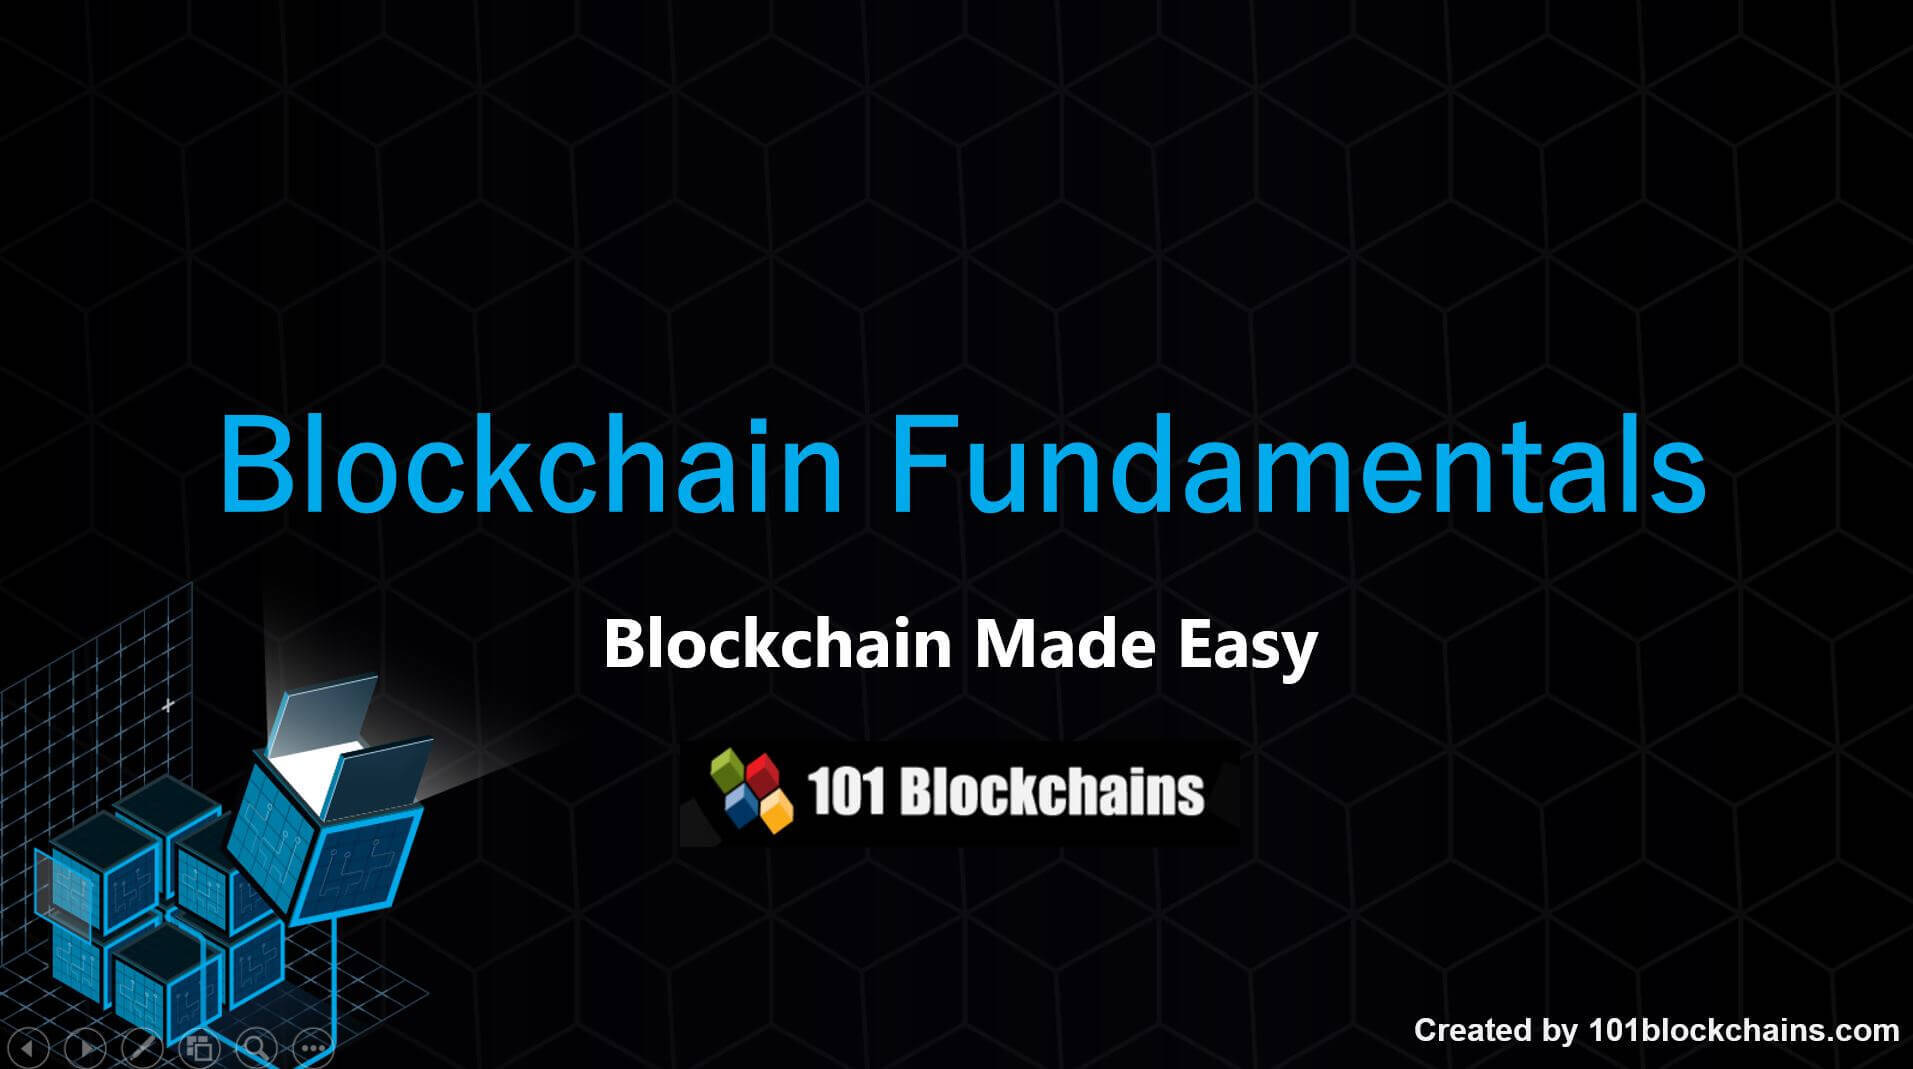 Blockchain Fundamentals Presentation - Introduction to